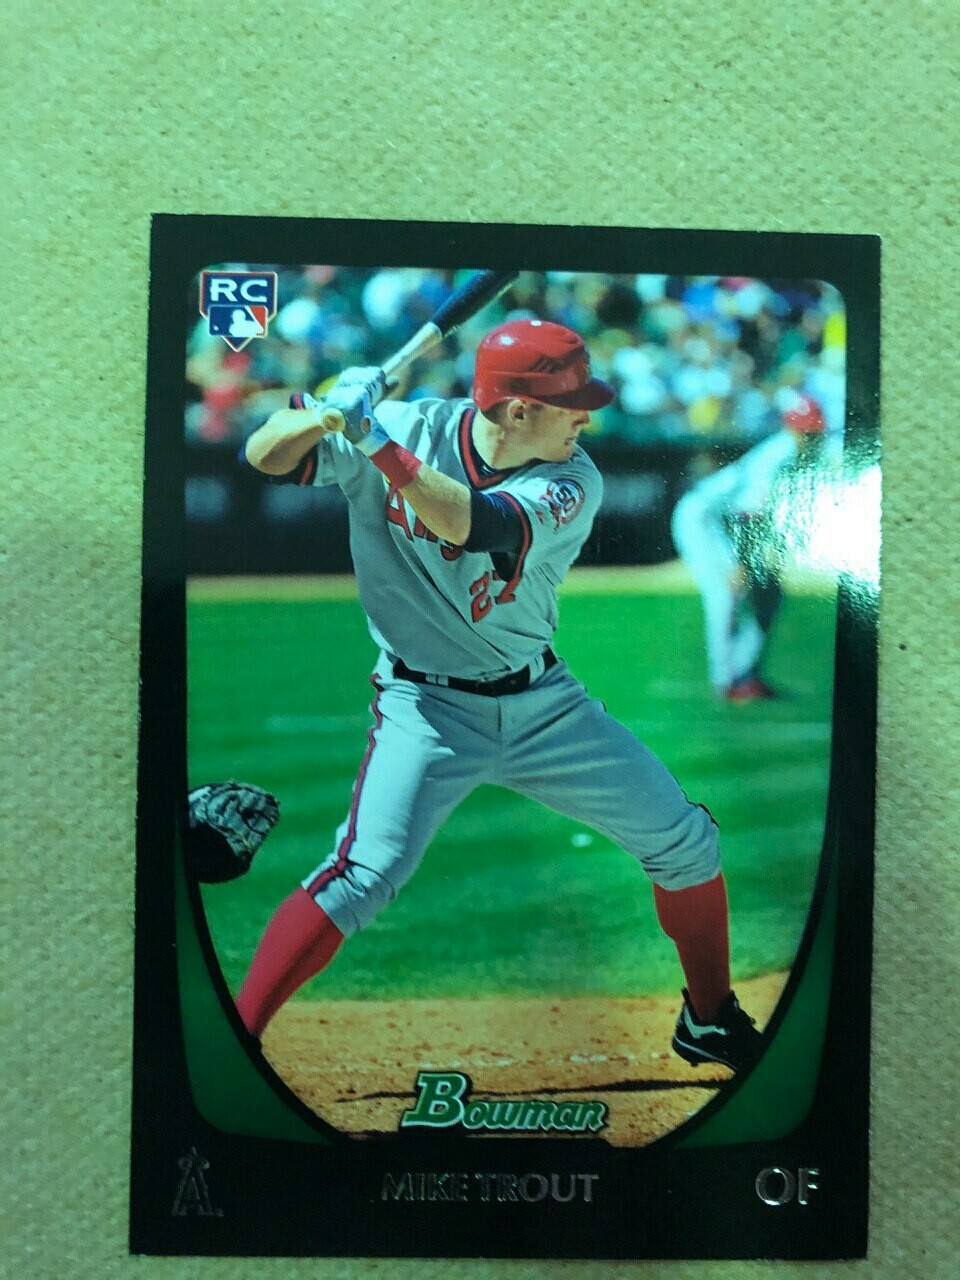 2011 Bowman Mike Trout rookie, $150